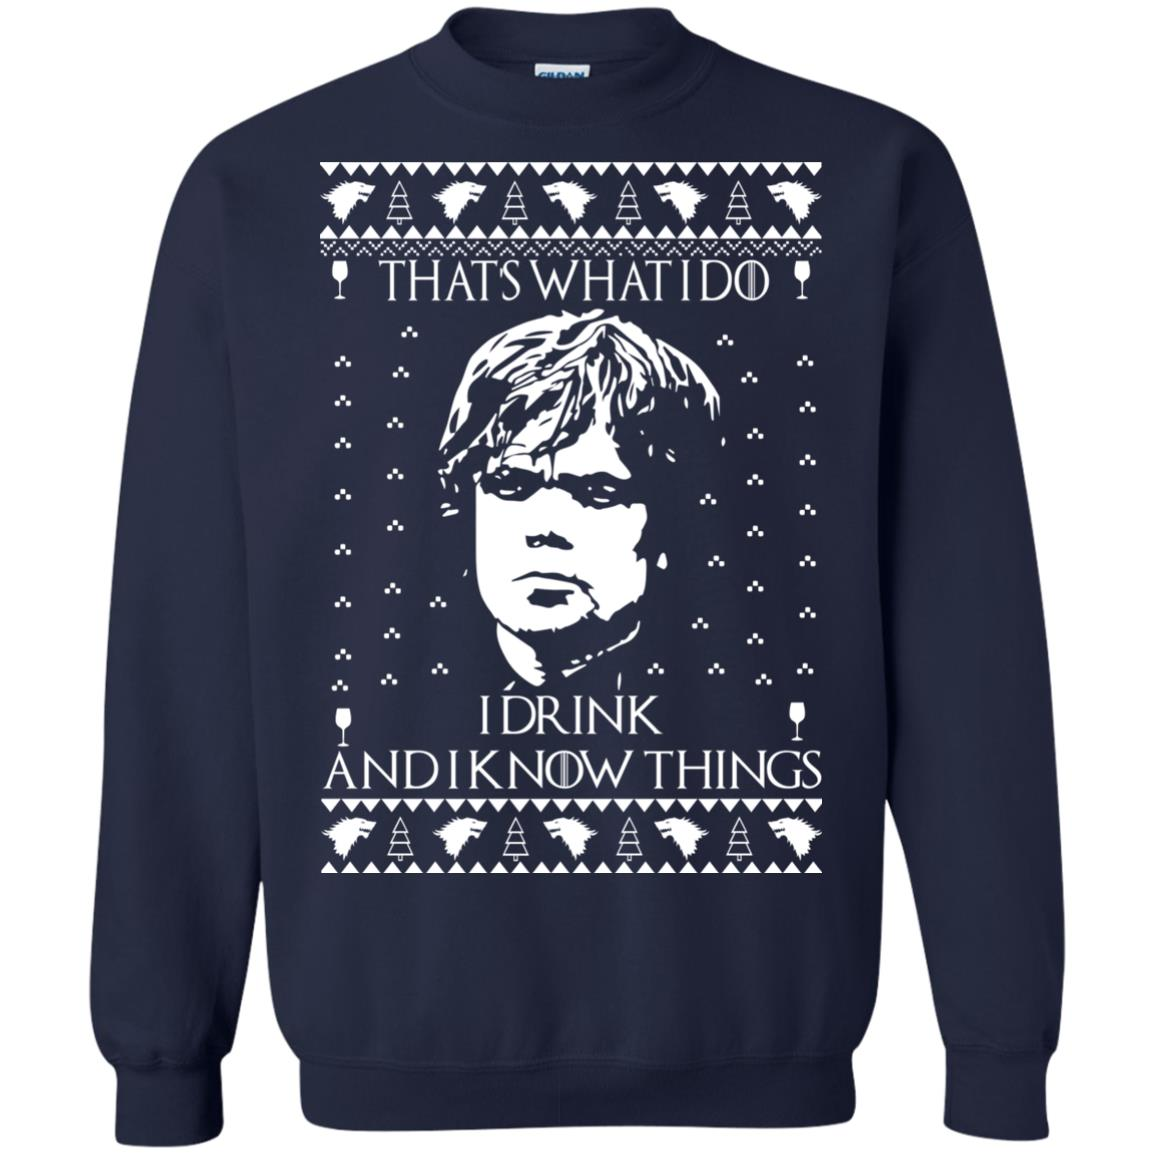 image 3008 - Tyrion Lannister I Drink and I Know Things Ugly Christmas Sweater, Shirt